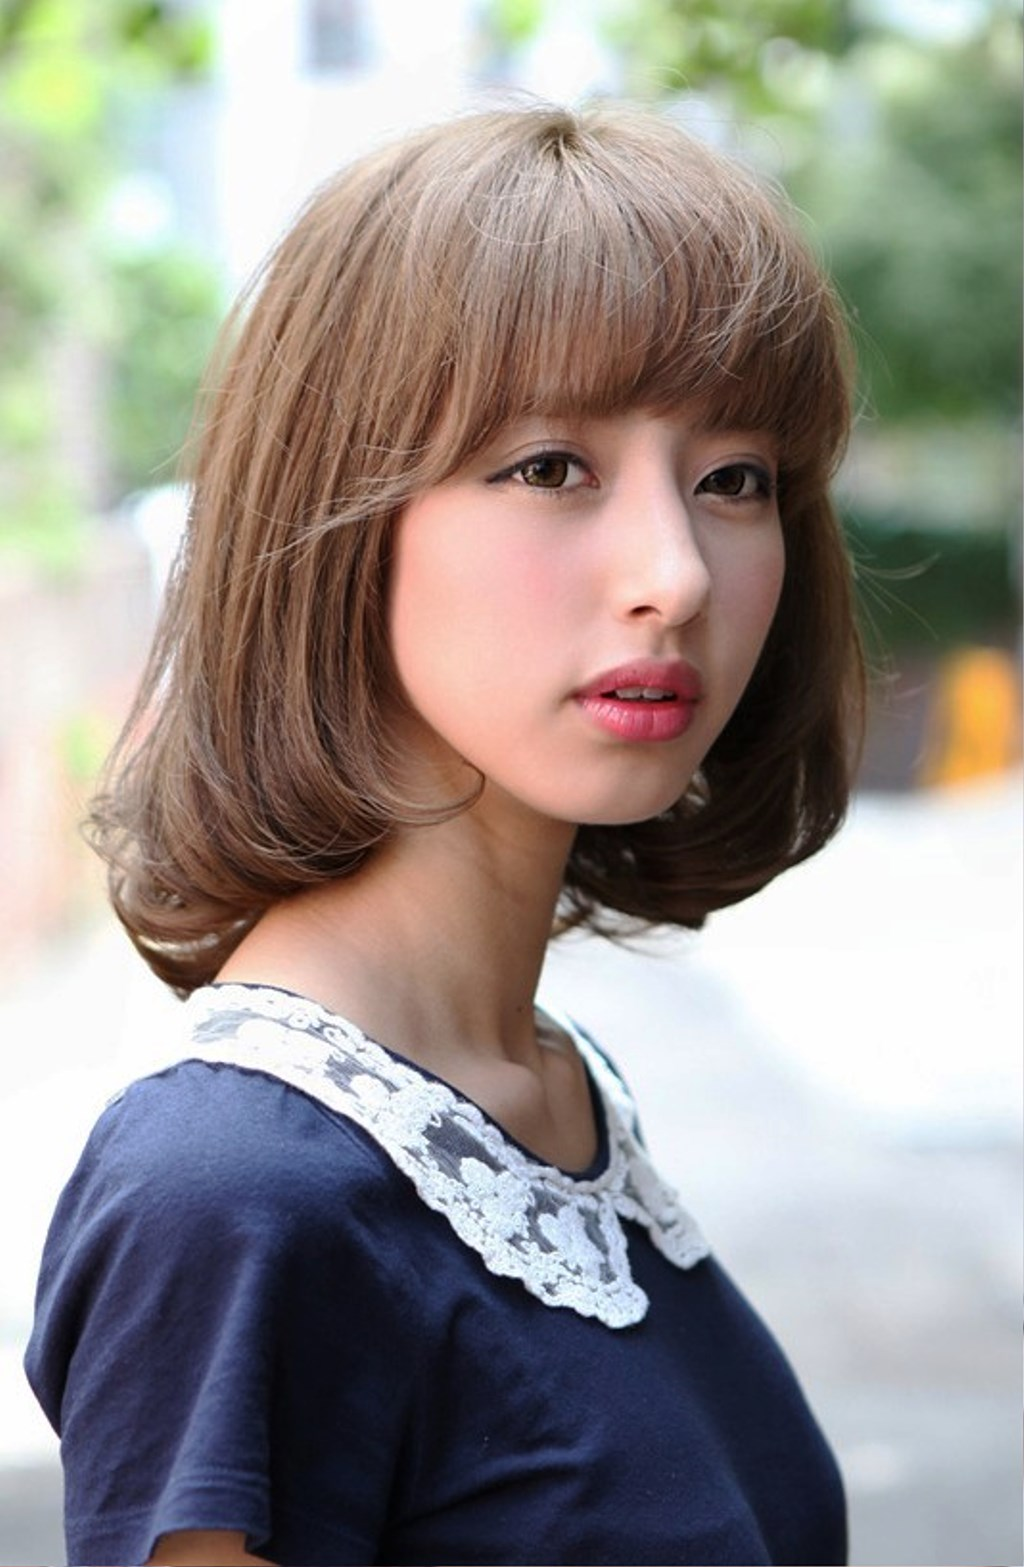 Swell Pictures Of Cute Japanese Bob Hairstyle For Girls Hairstyles For Men Maxibearus